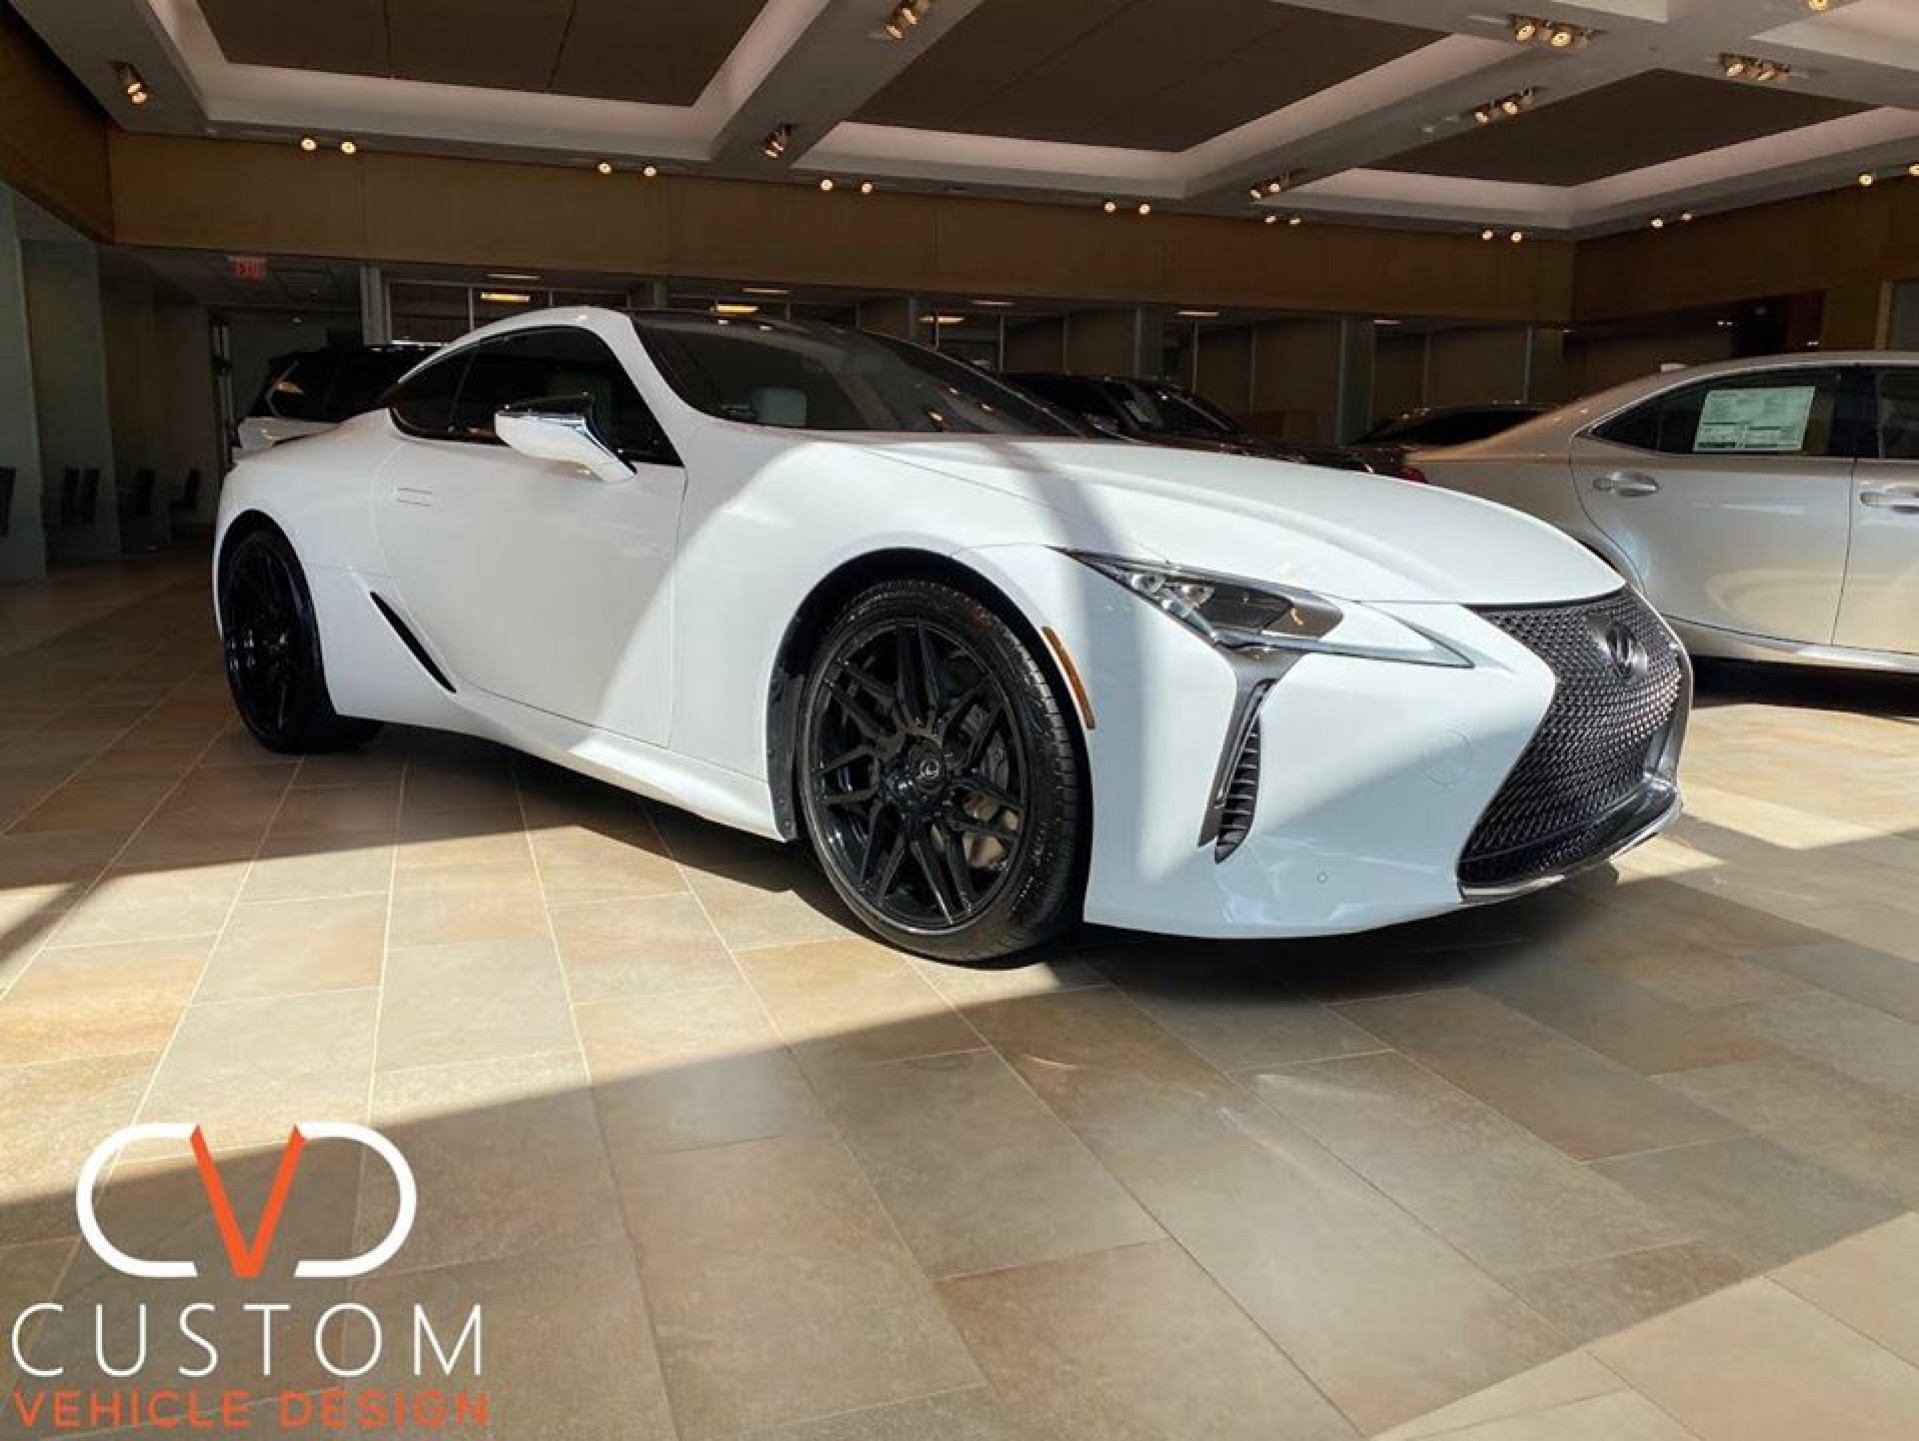 Lexus LC500 with Rohana RXF7 wheels in gloss black